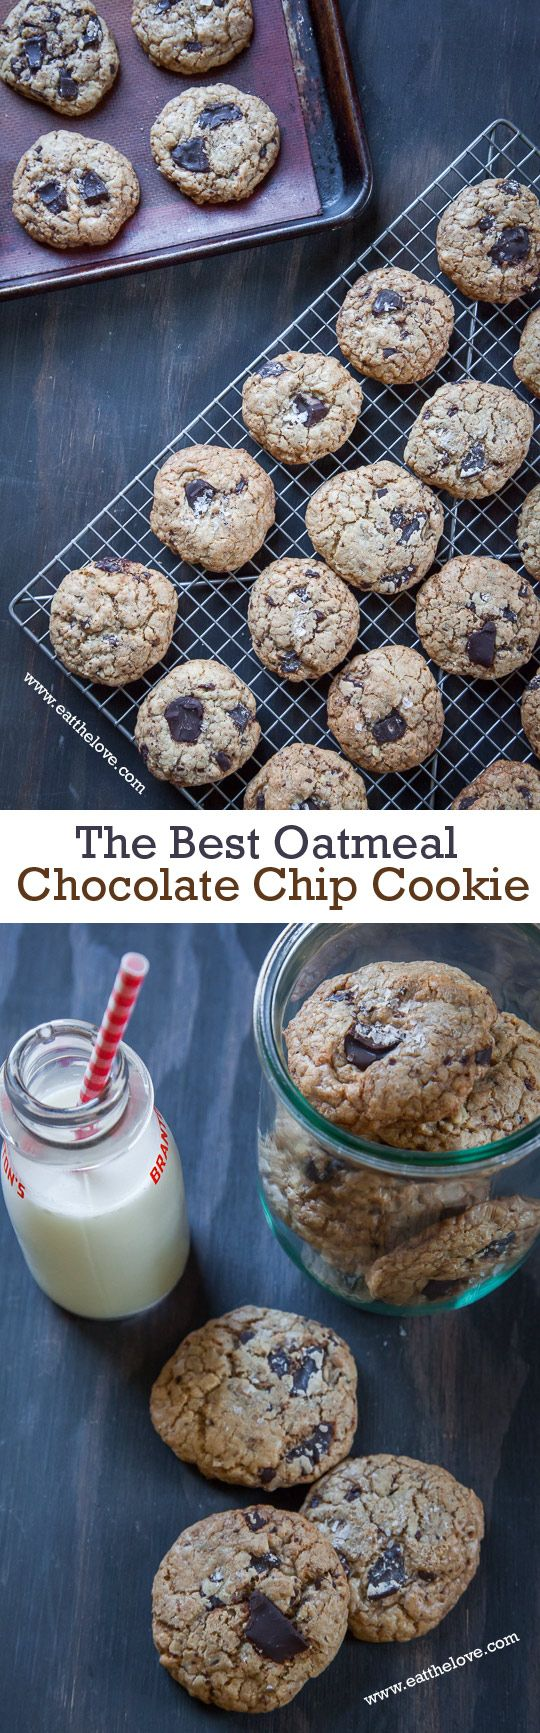 This oatmeal chocolate chip cookie recipe is one of the absolute best ever because of a few special tips and tricks! Seriously. The best ever.